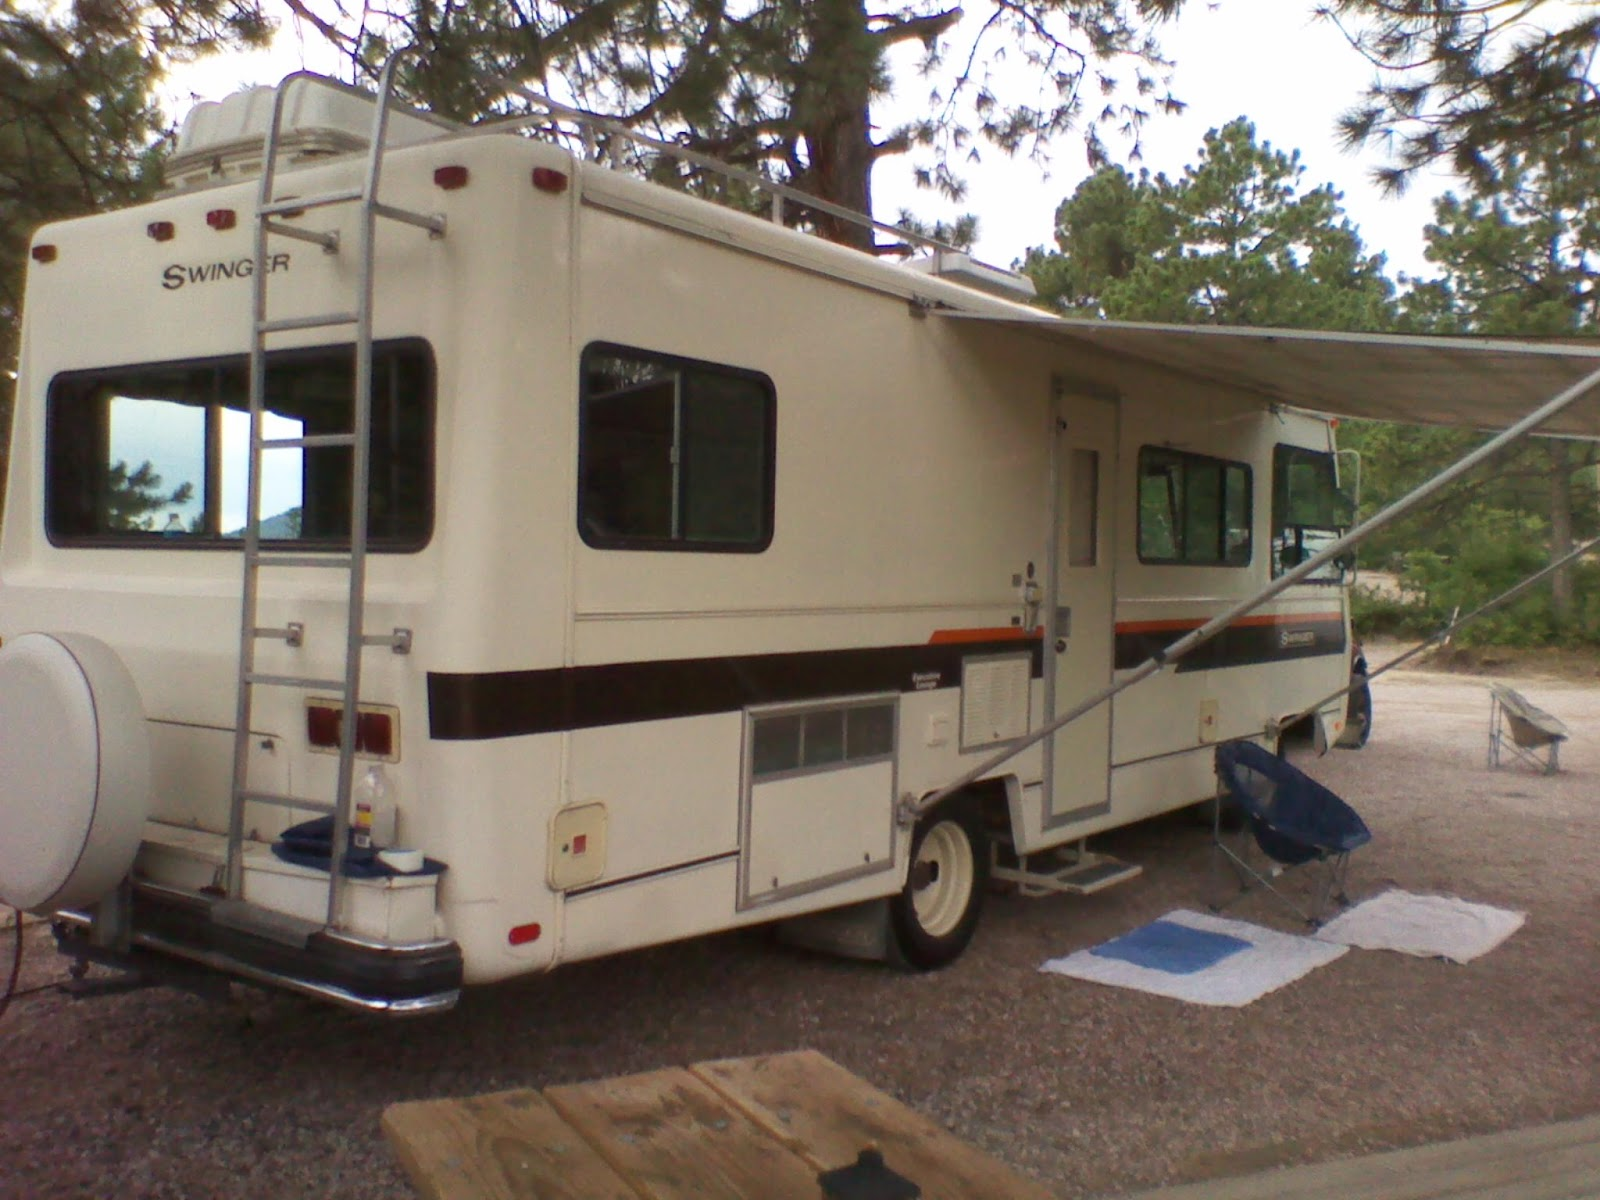 My Vintage 1978 Georgie Boy Swinger Executive Lounge Motorhome Duo Therm Thermostat Wiring Diagram 1979 Nu Wa Note Shine On Coach And As Of Yet We Have Still Not Waxed It Rug Outside Door Shoes Are Never Ever Permitted Within The